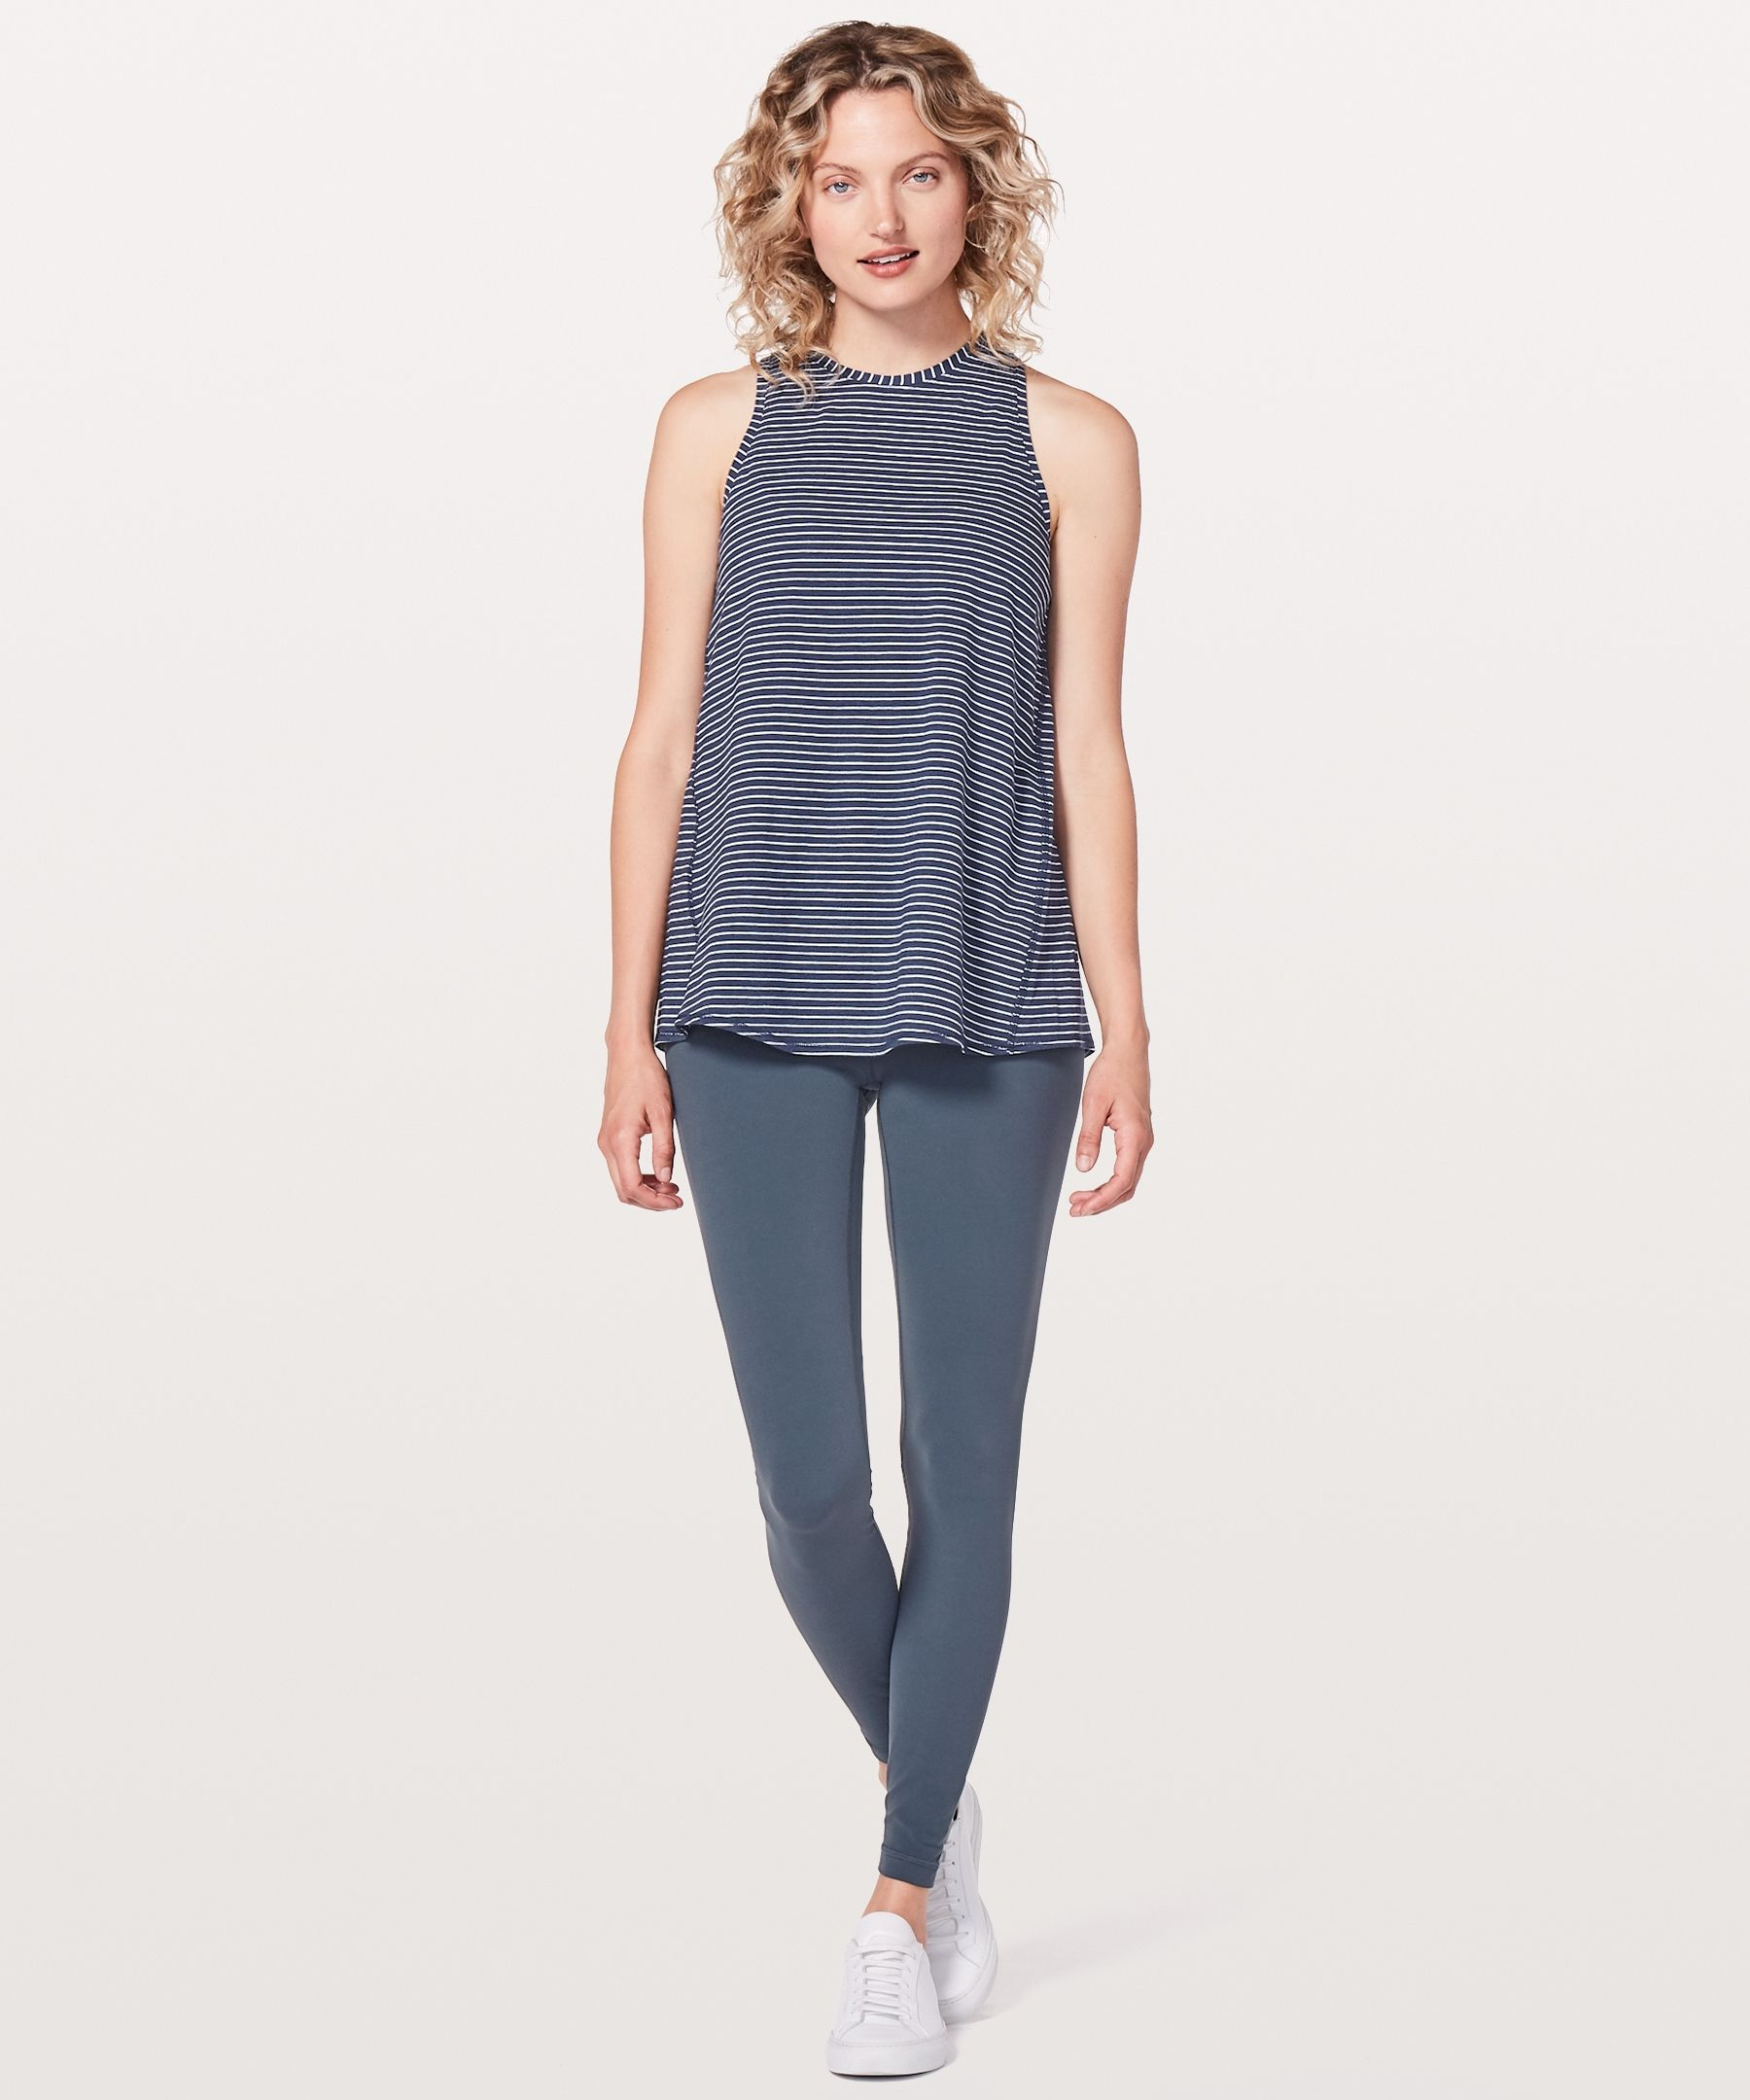 881486acbf Shop the All Tied Up Tank | Women's Yoga Tank Tops. Wear this tank two ways:  layer it on long and loose or tie up the back to secure in place during ...